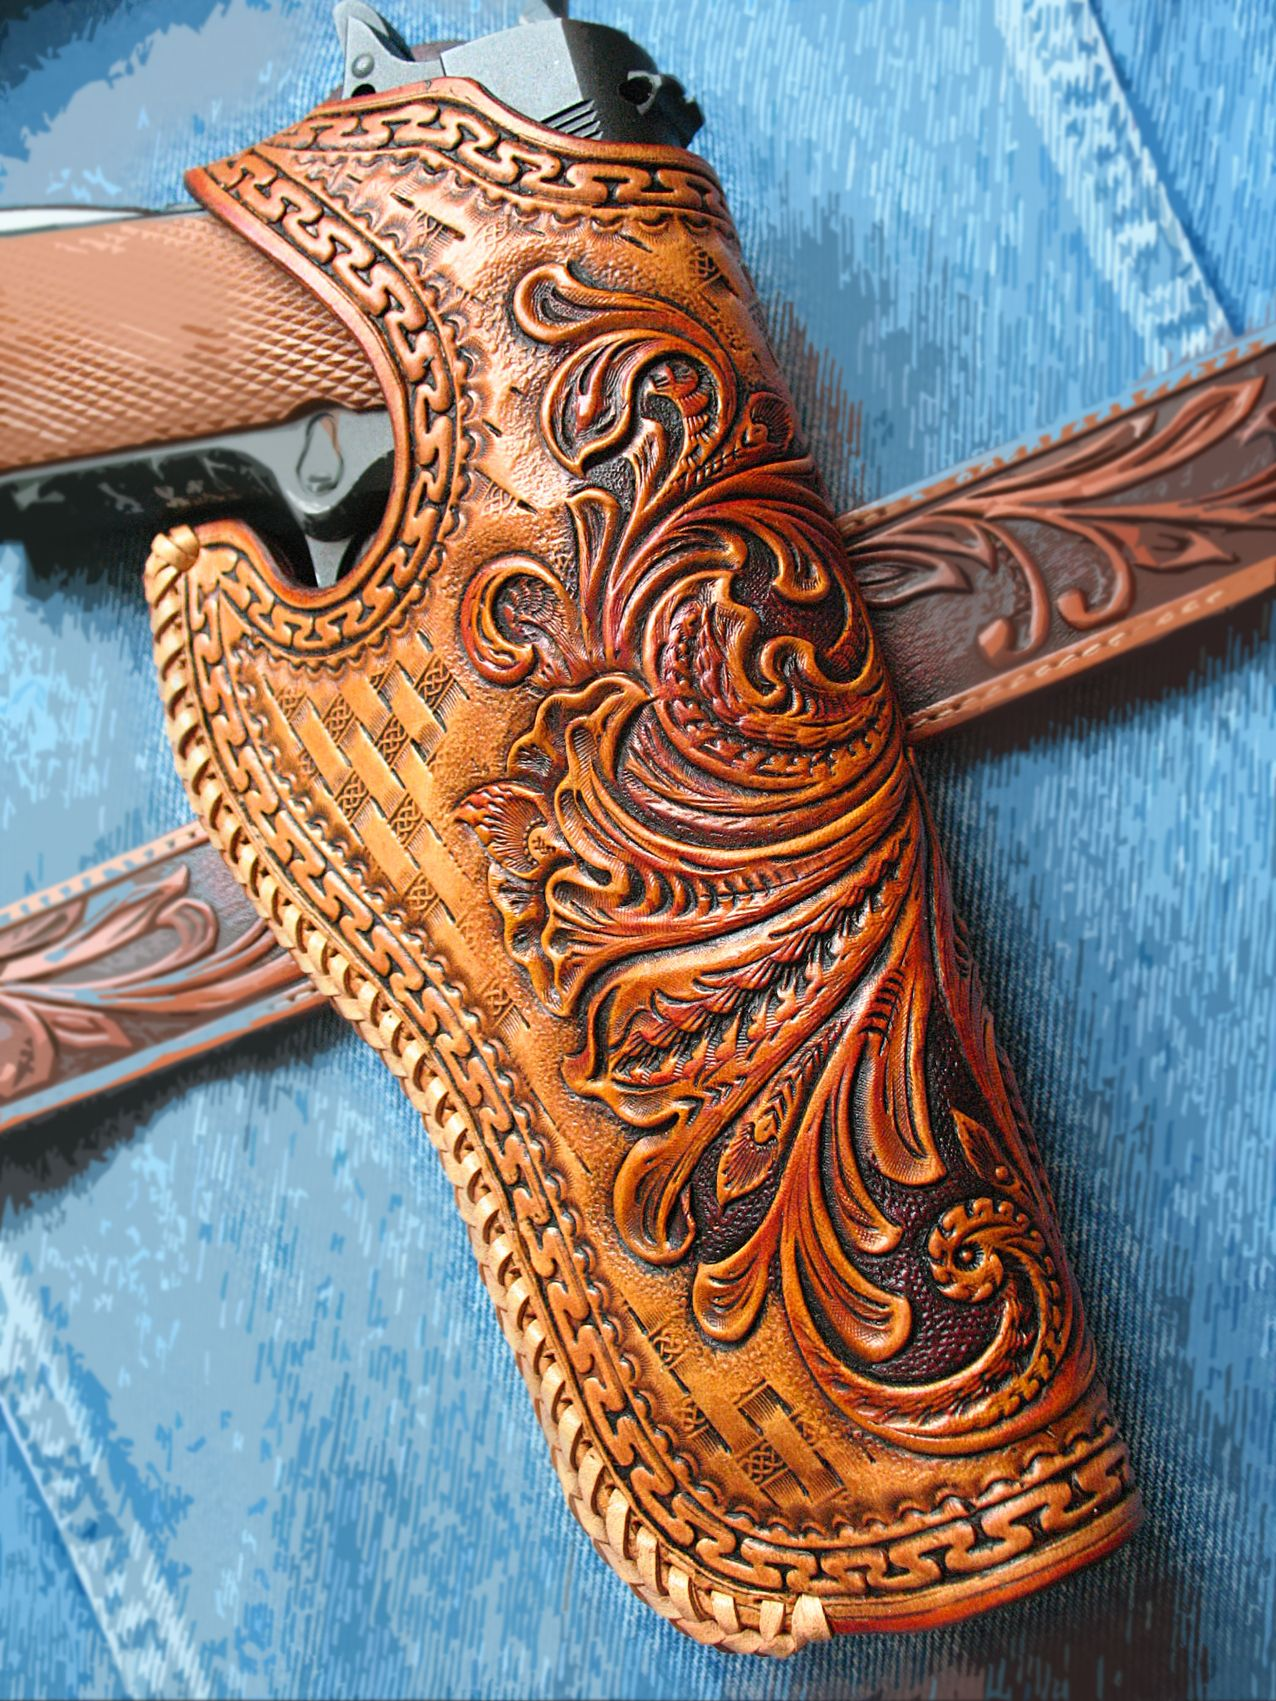 Buy a Hand Made Tooled Holster 1911 Floral Sheridan Design